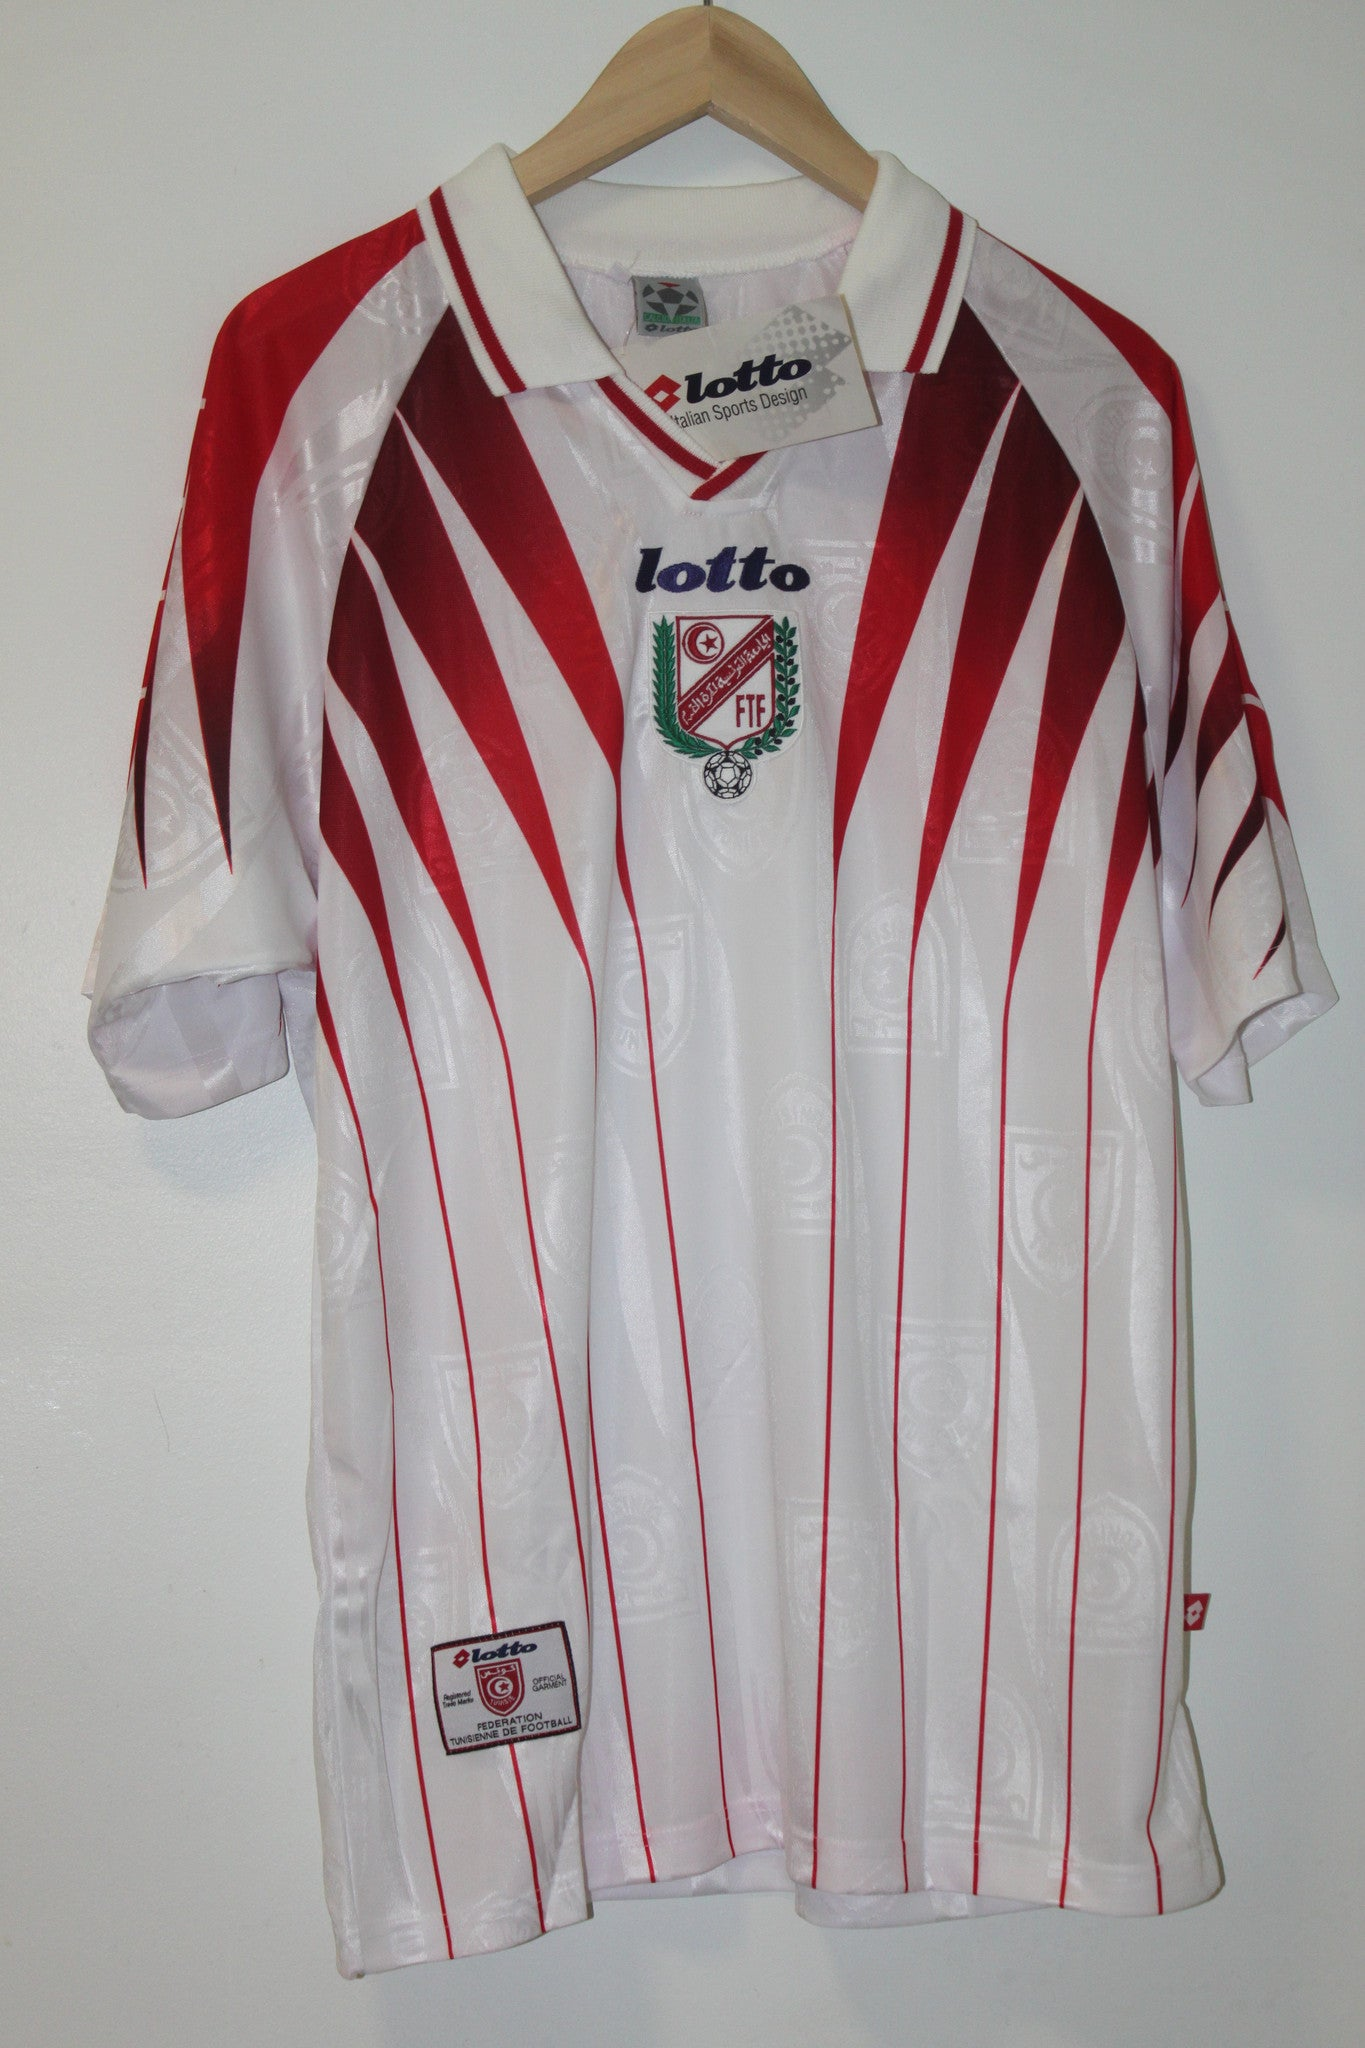 Tunisia World Cup 1998 Away Shirt Large Lotto BNWT